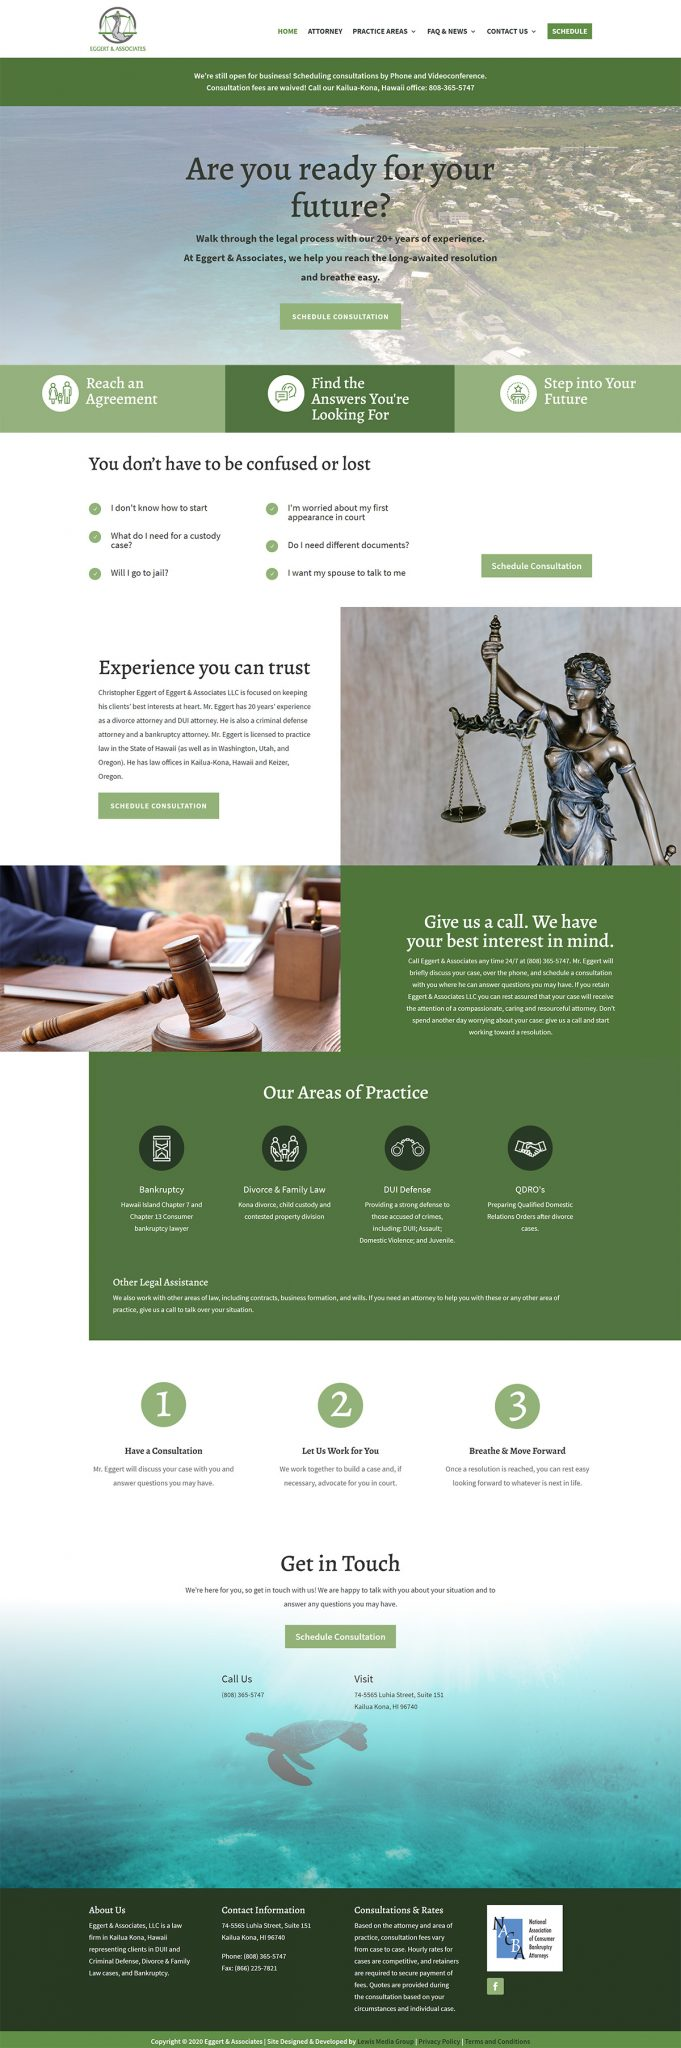 Eggert & Associates Kona Home page after redesign